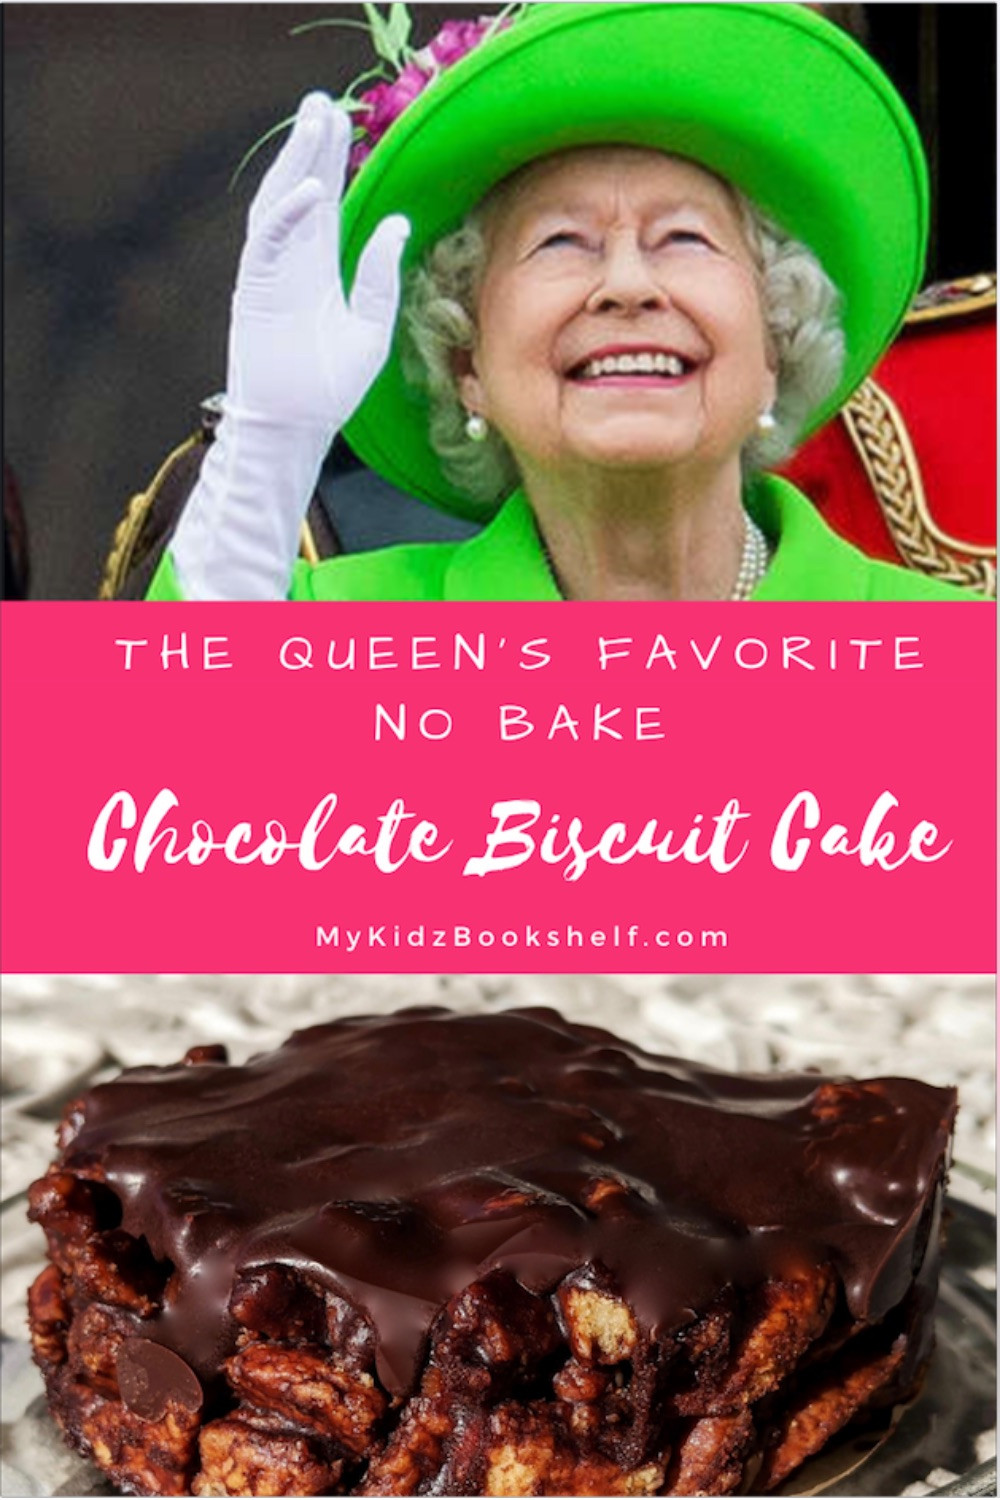 Pinterest Pin Chocolate biscuit cake a favorite of Queen Elizabeth's